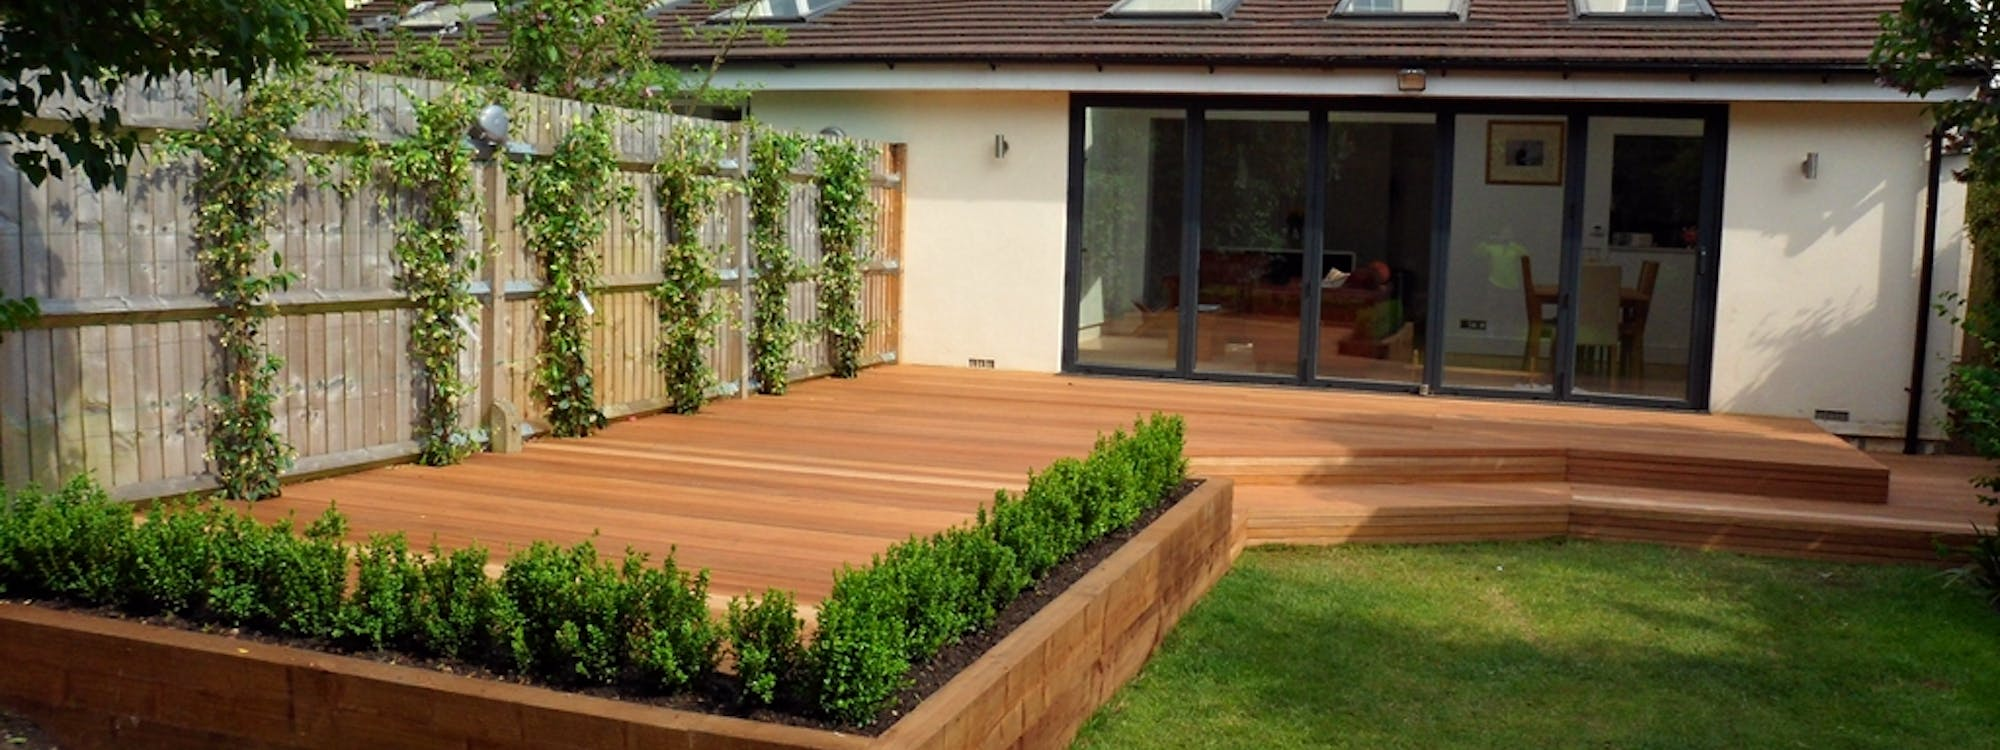 external improvements - fencing, gates & decking designed, supplied, project managed & installed